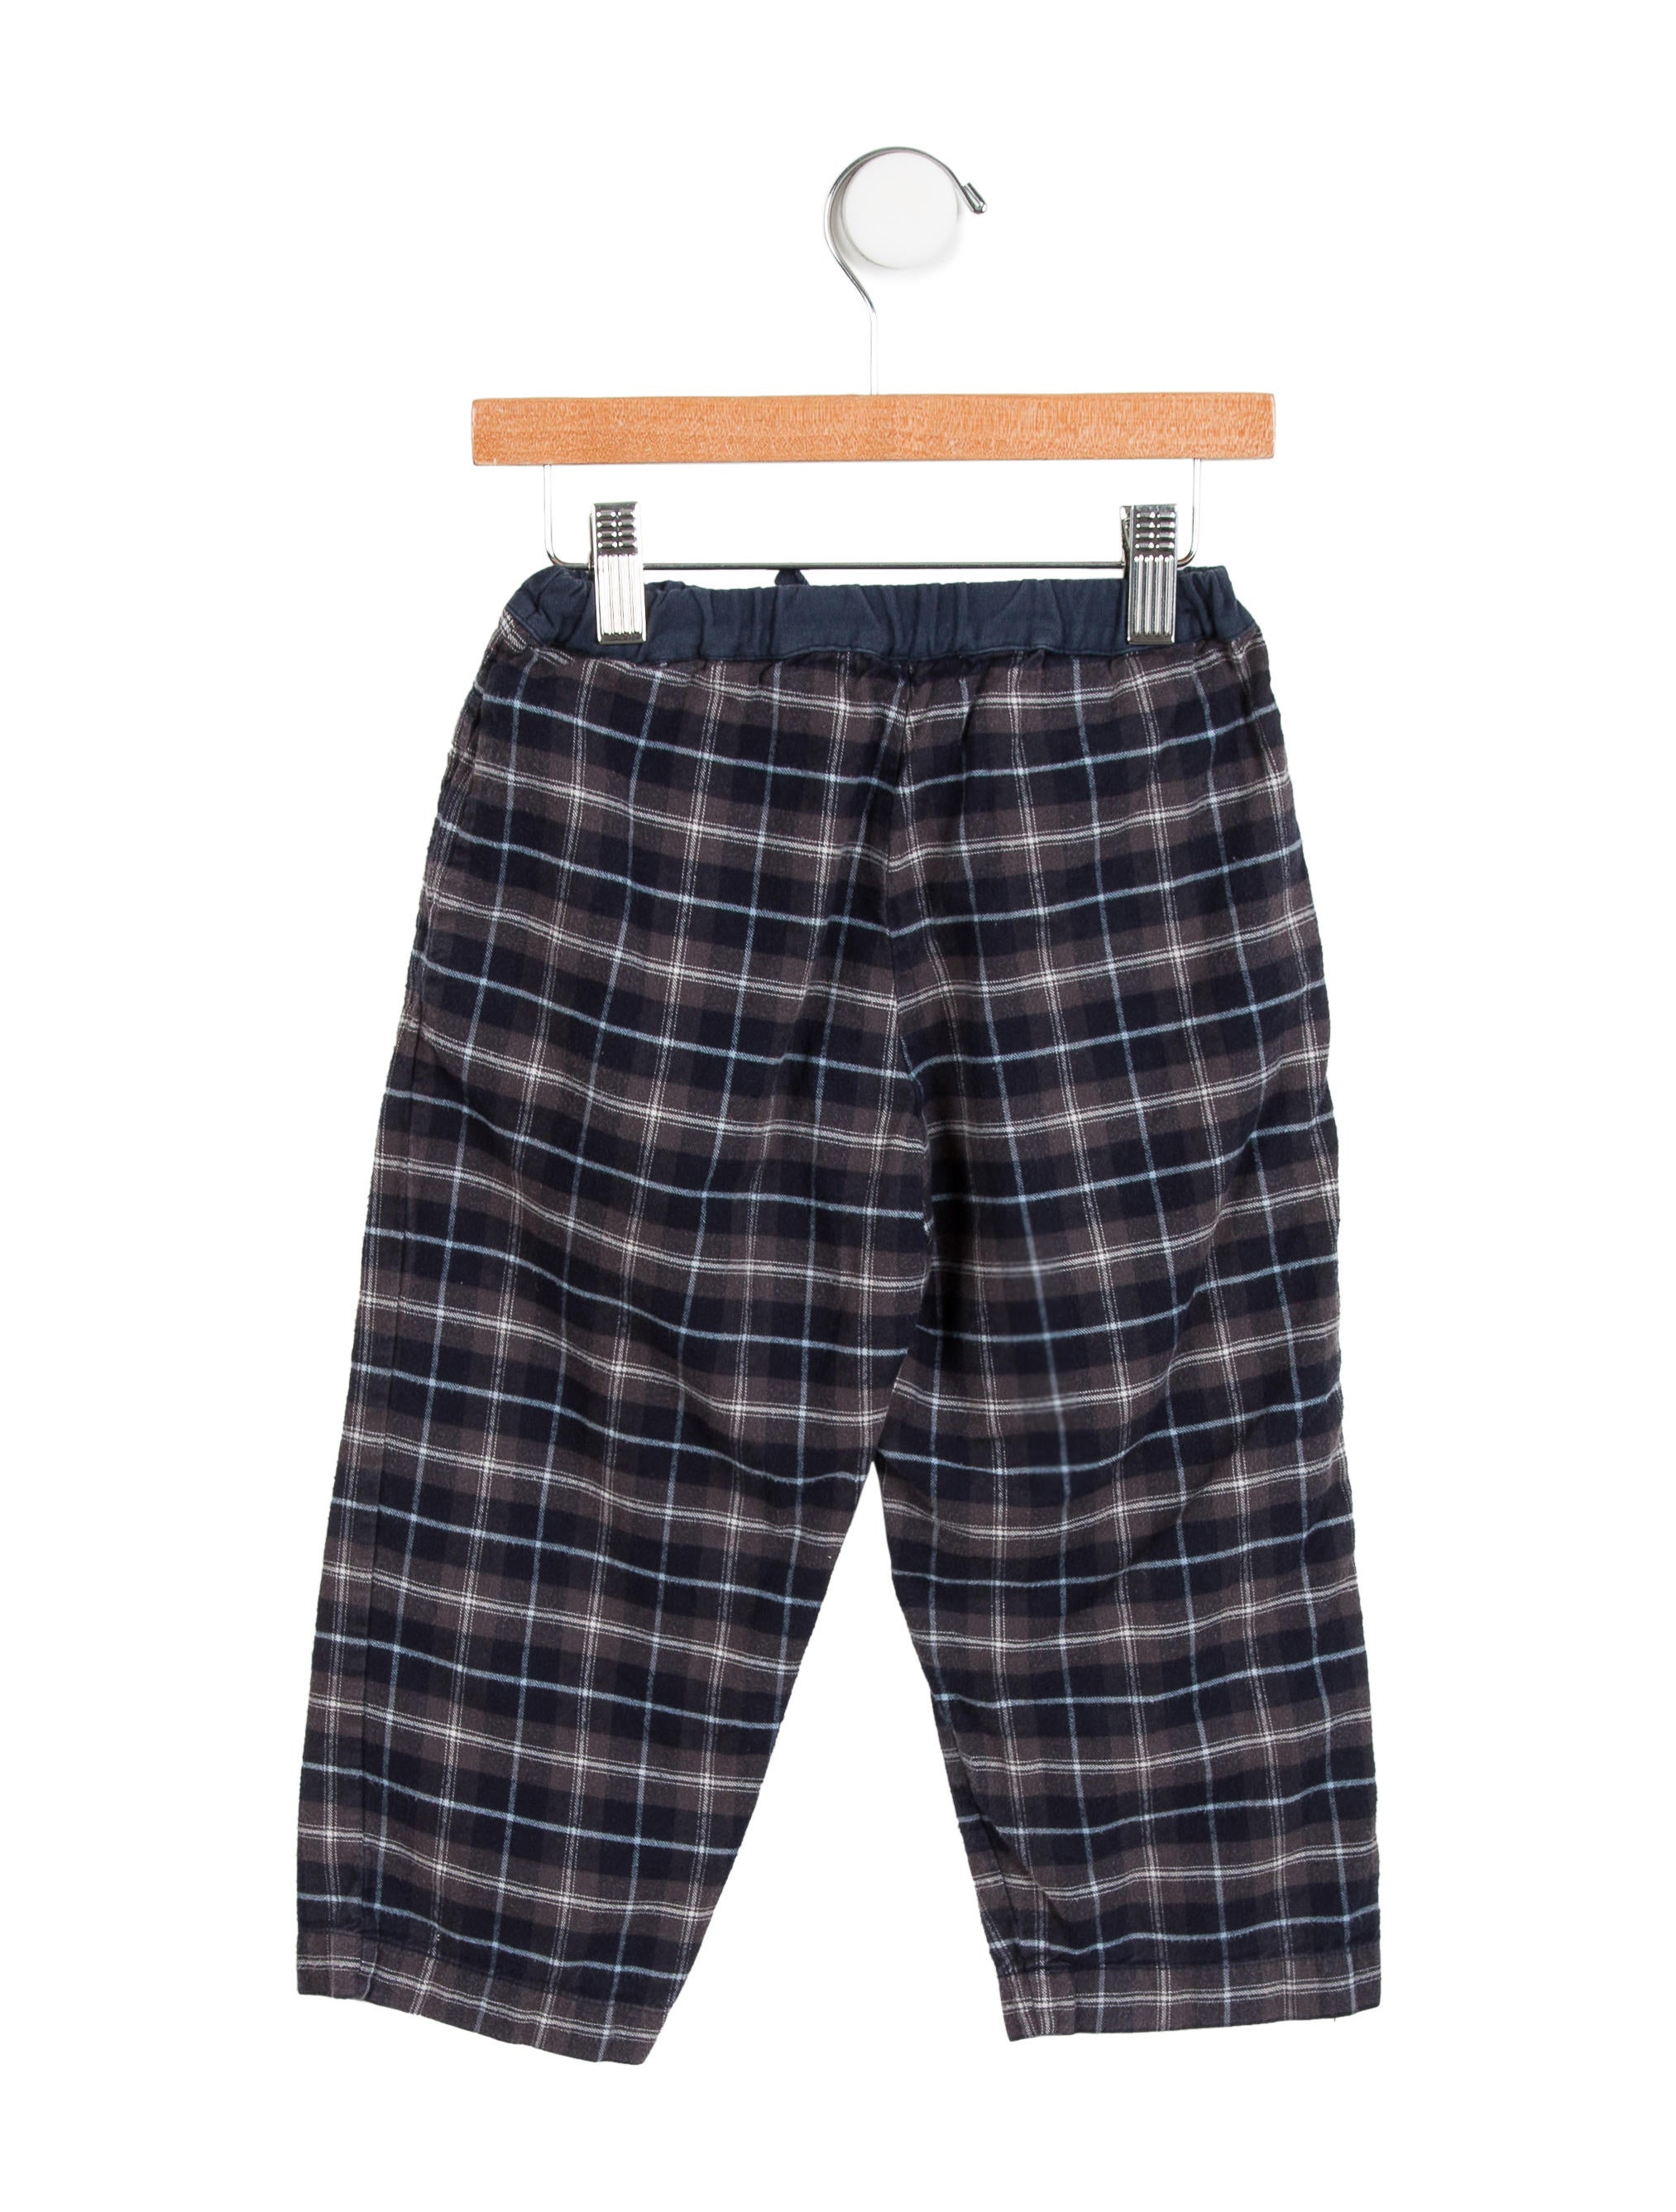 Boy's plaid pants are a splendid solution to give as a wonderful gift to children in your family. They are attractive and comfortable too. The fit and cuteness of these boy's plaid pants are relished by .